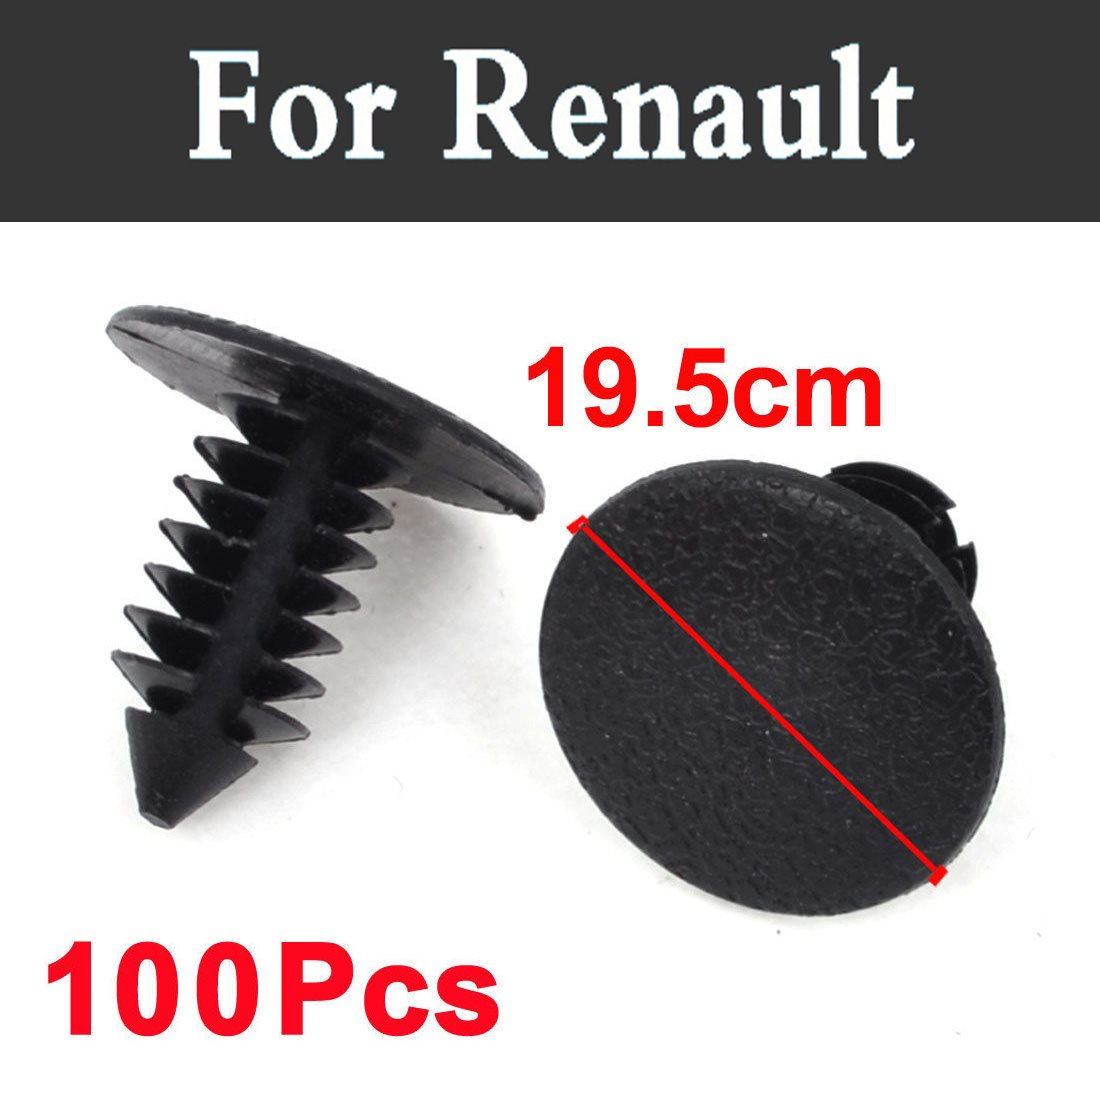 100pcs Auto Fastener Nylon Car Clips Fender Bumper Shield Screw For Renault Sandero Symbol Talisman Twingo Twizy Vel Satis Wind